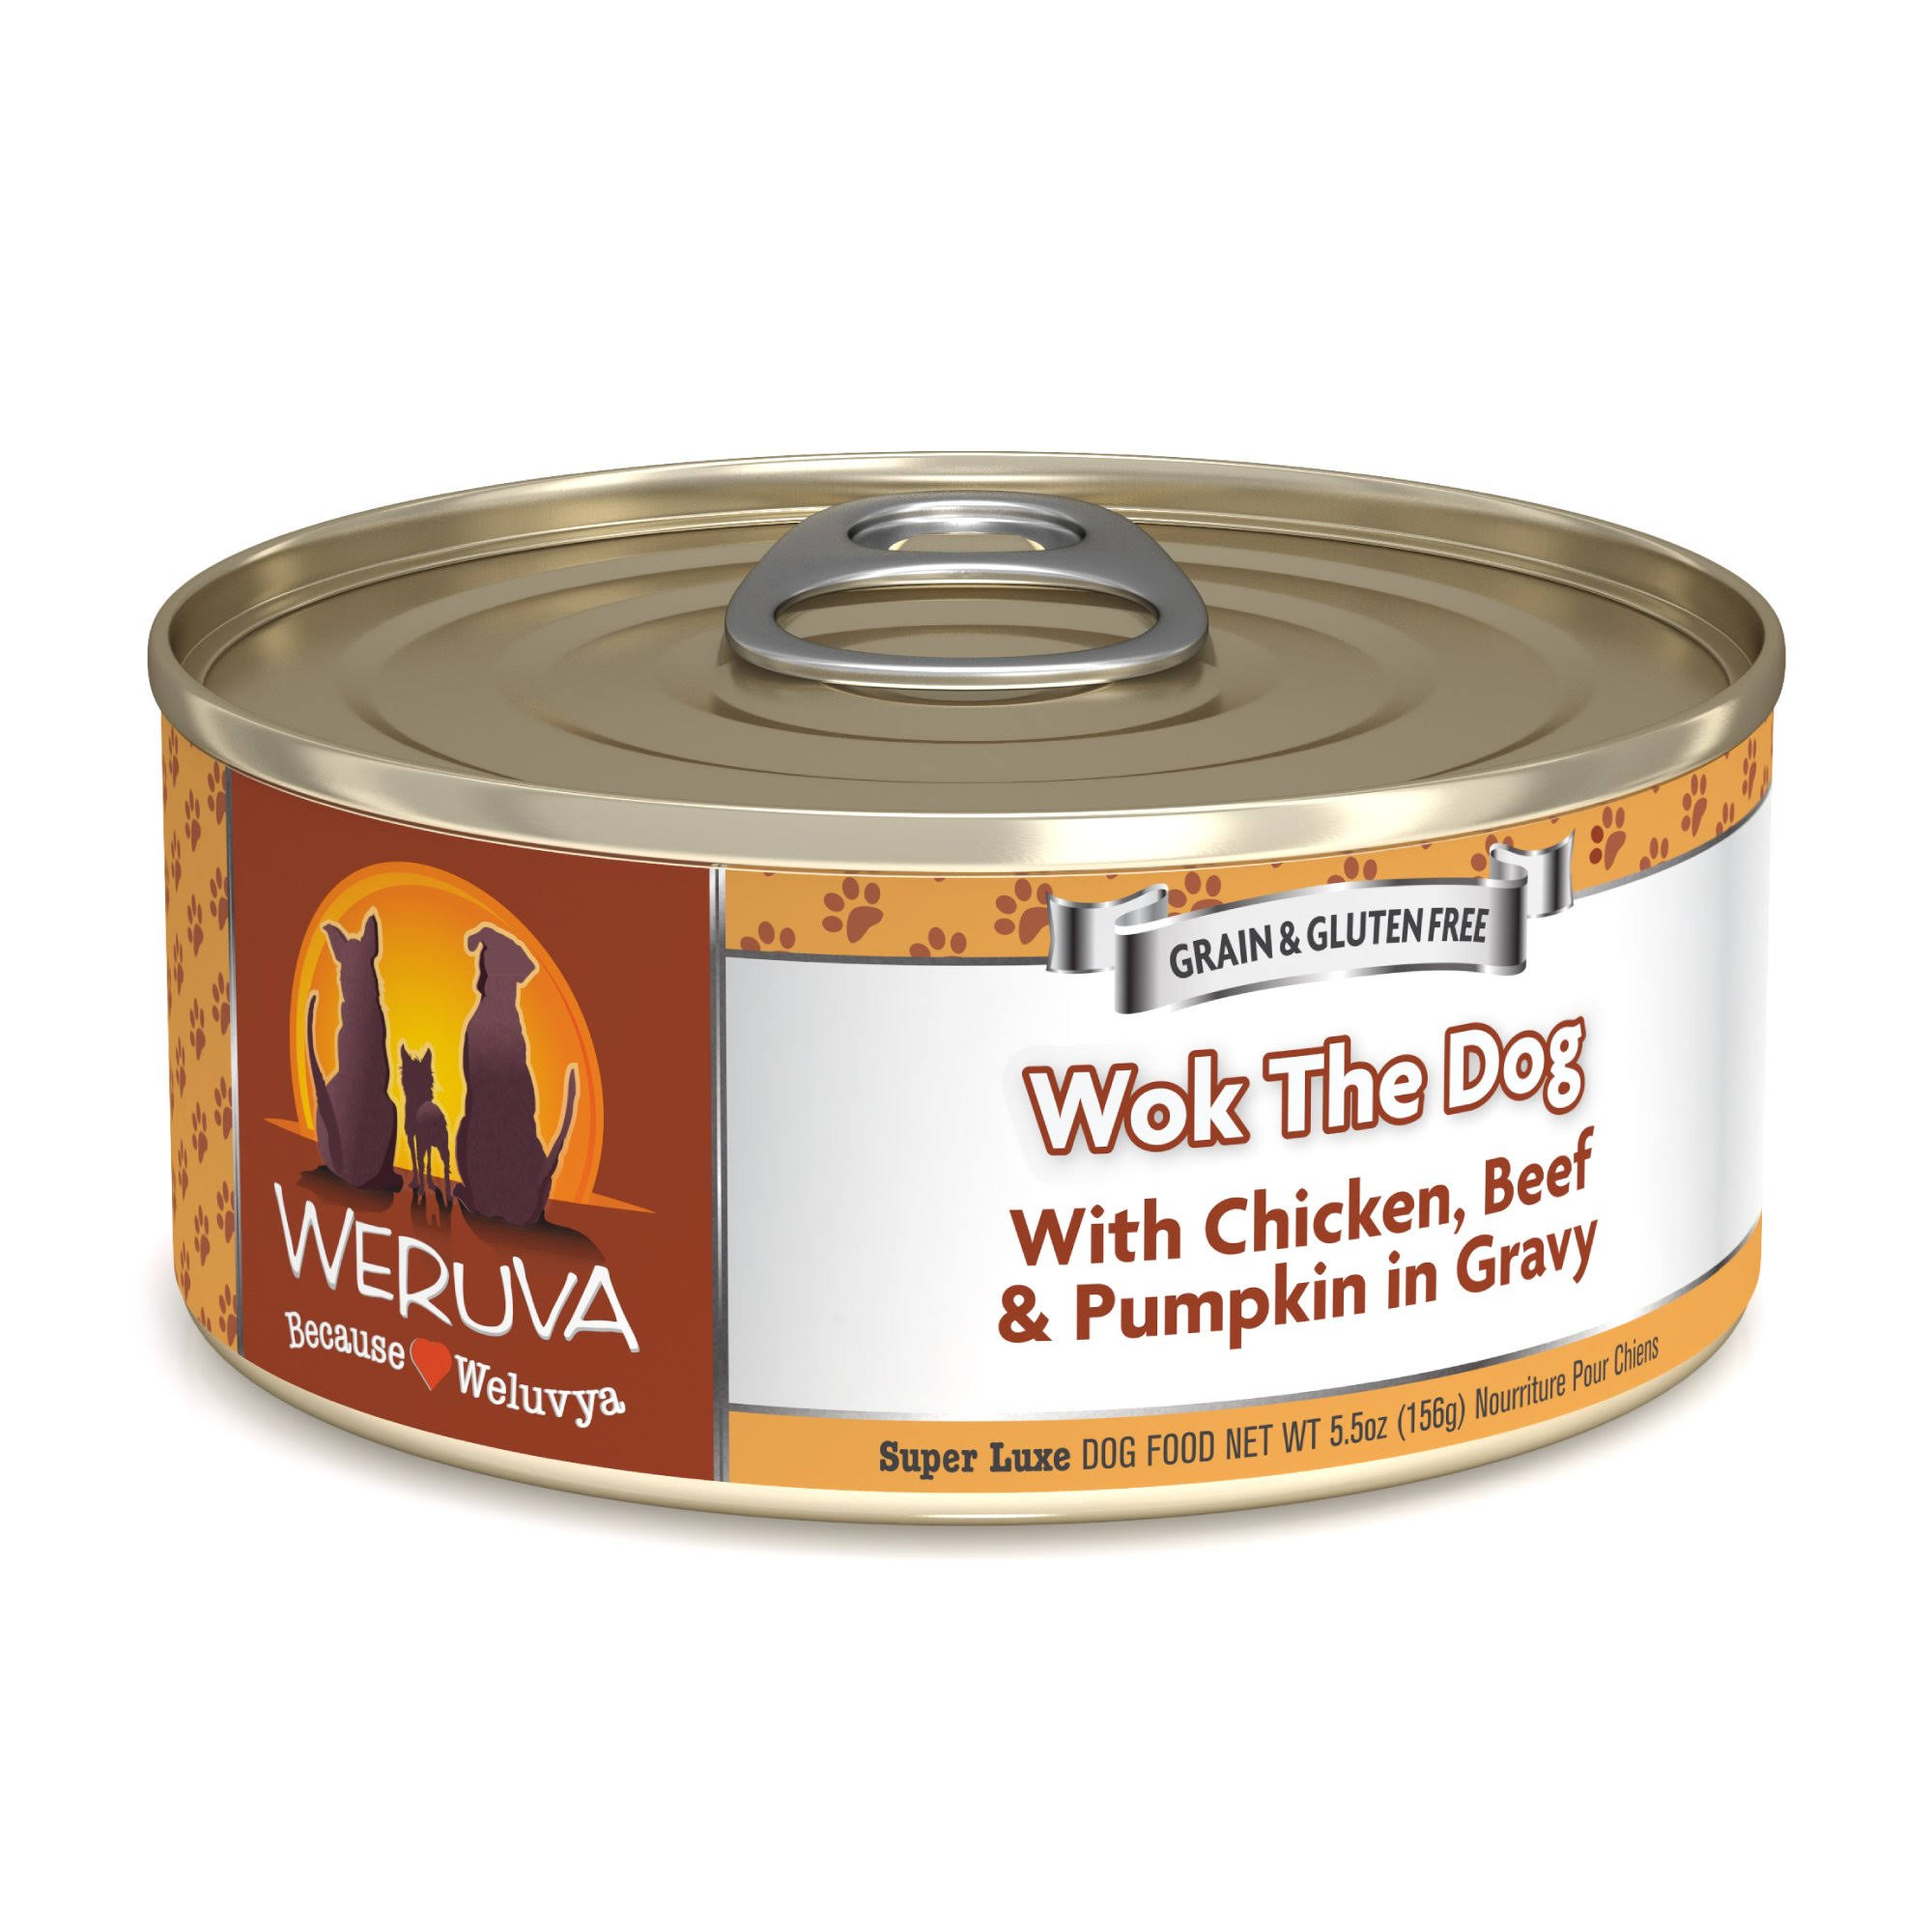 Weruva Wok The Dog Canned Dog Food - 5.5oz